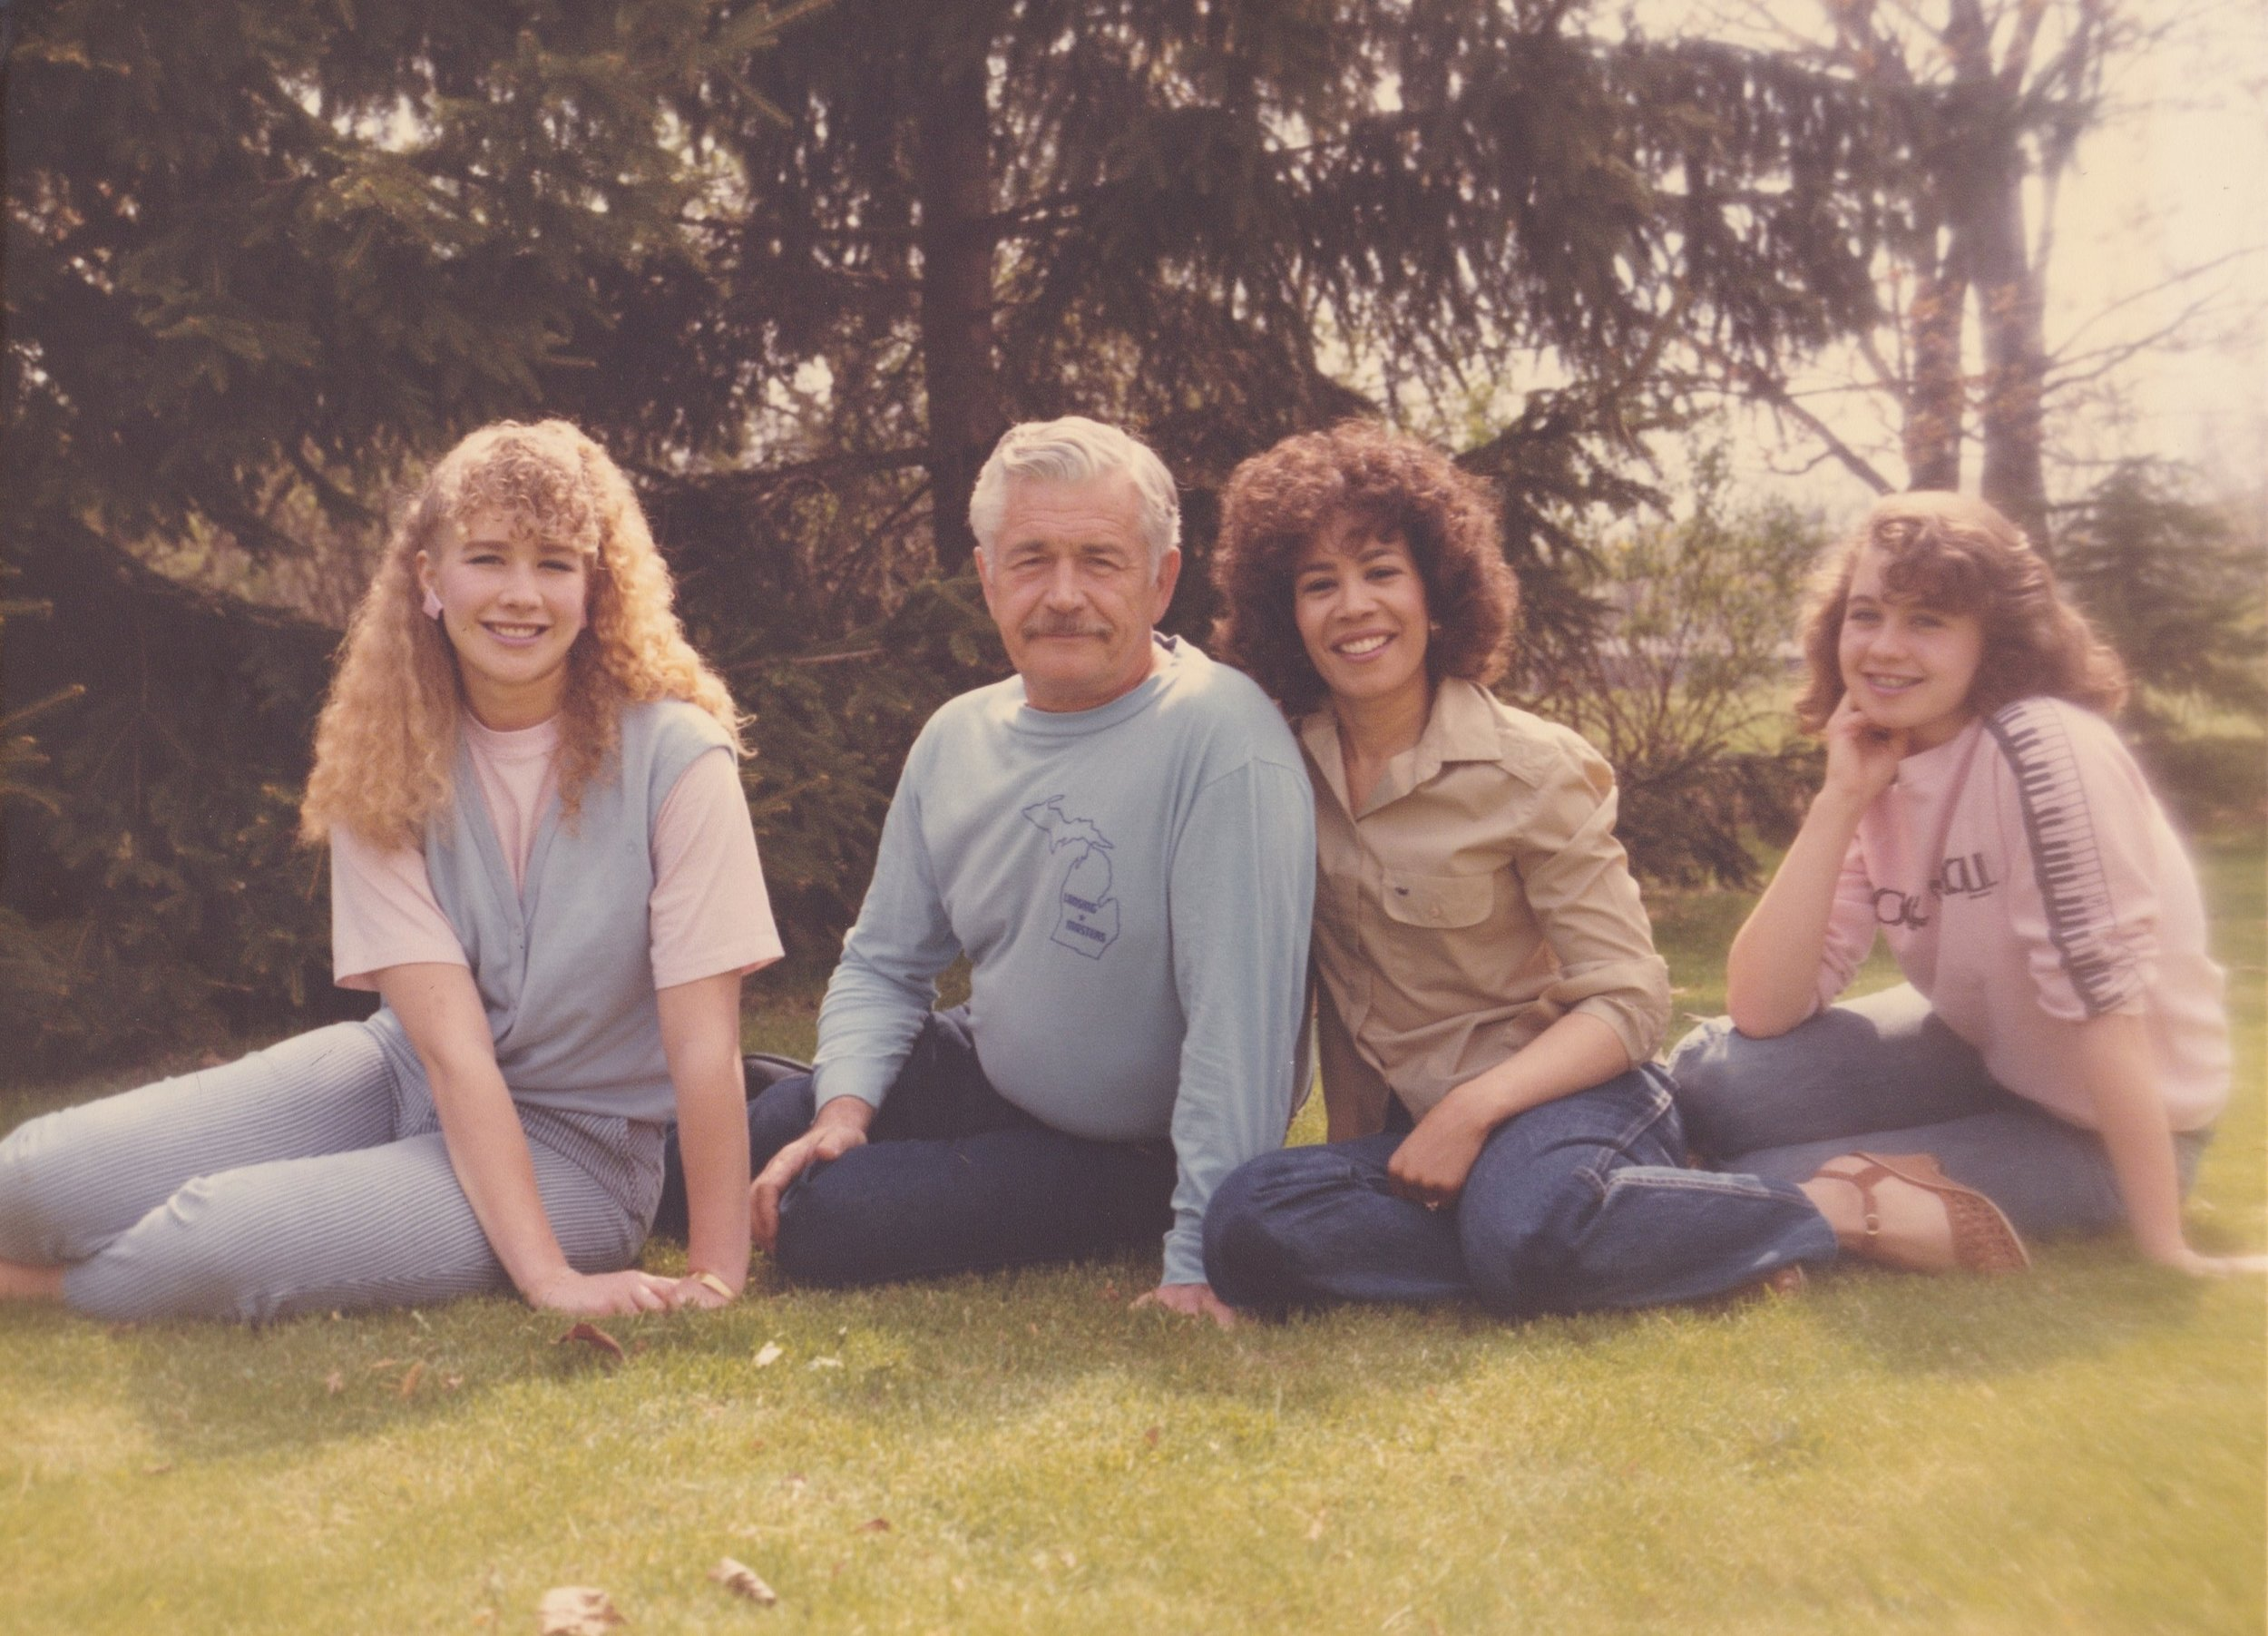 That's our family in 1986 in our backyard in Okemos, Michigan. Our father, Thomas Lee Atkins, was a Roman Catholic priest for 15 years. Our mother, Marylin Atkins, was the organist at his parish. She's also black and 25 years younger than him! They married pre- Loving v. Virginia . After she retired from her position as Chief Judge of Detroit's 36th District Court, she wrote her memoir,   The Triumph of Rosemary  , chronicling her life from her adoption till now, including what she and our father went through when he left the priesthood and they married and had us!  Check it out here . Our father kept a journal his whole life, so we are a family of writers. Although he died in 1990, we keep him alive in our conversations and memories of him. Besides, he's always with us in spirit. We know that without a doubt!